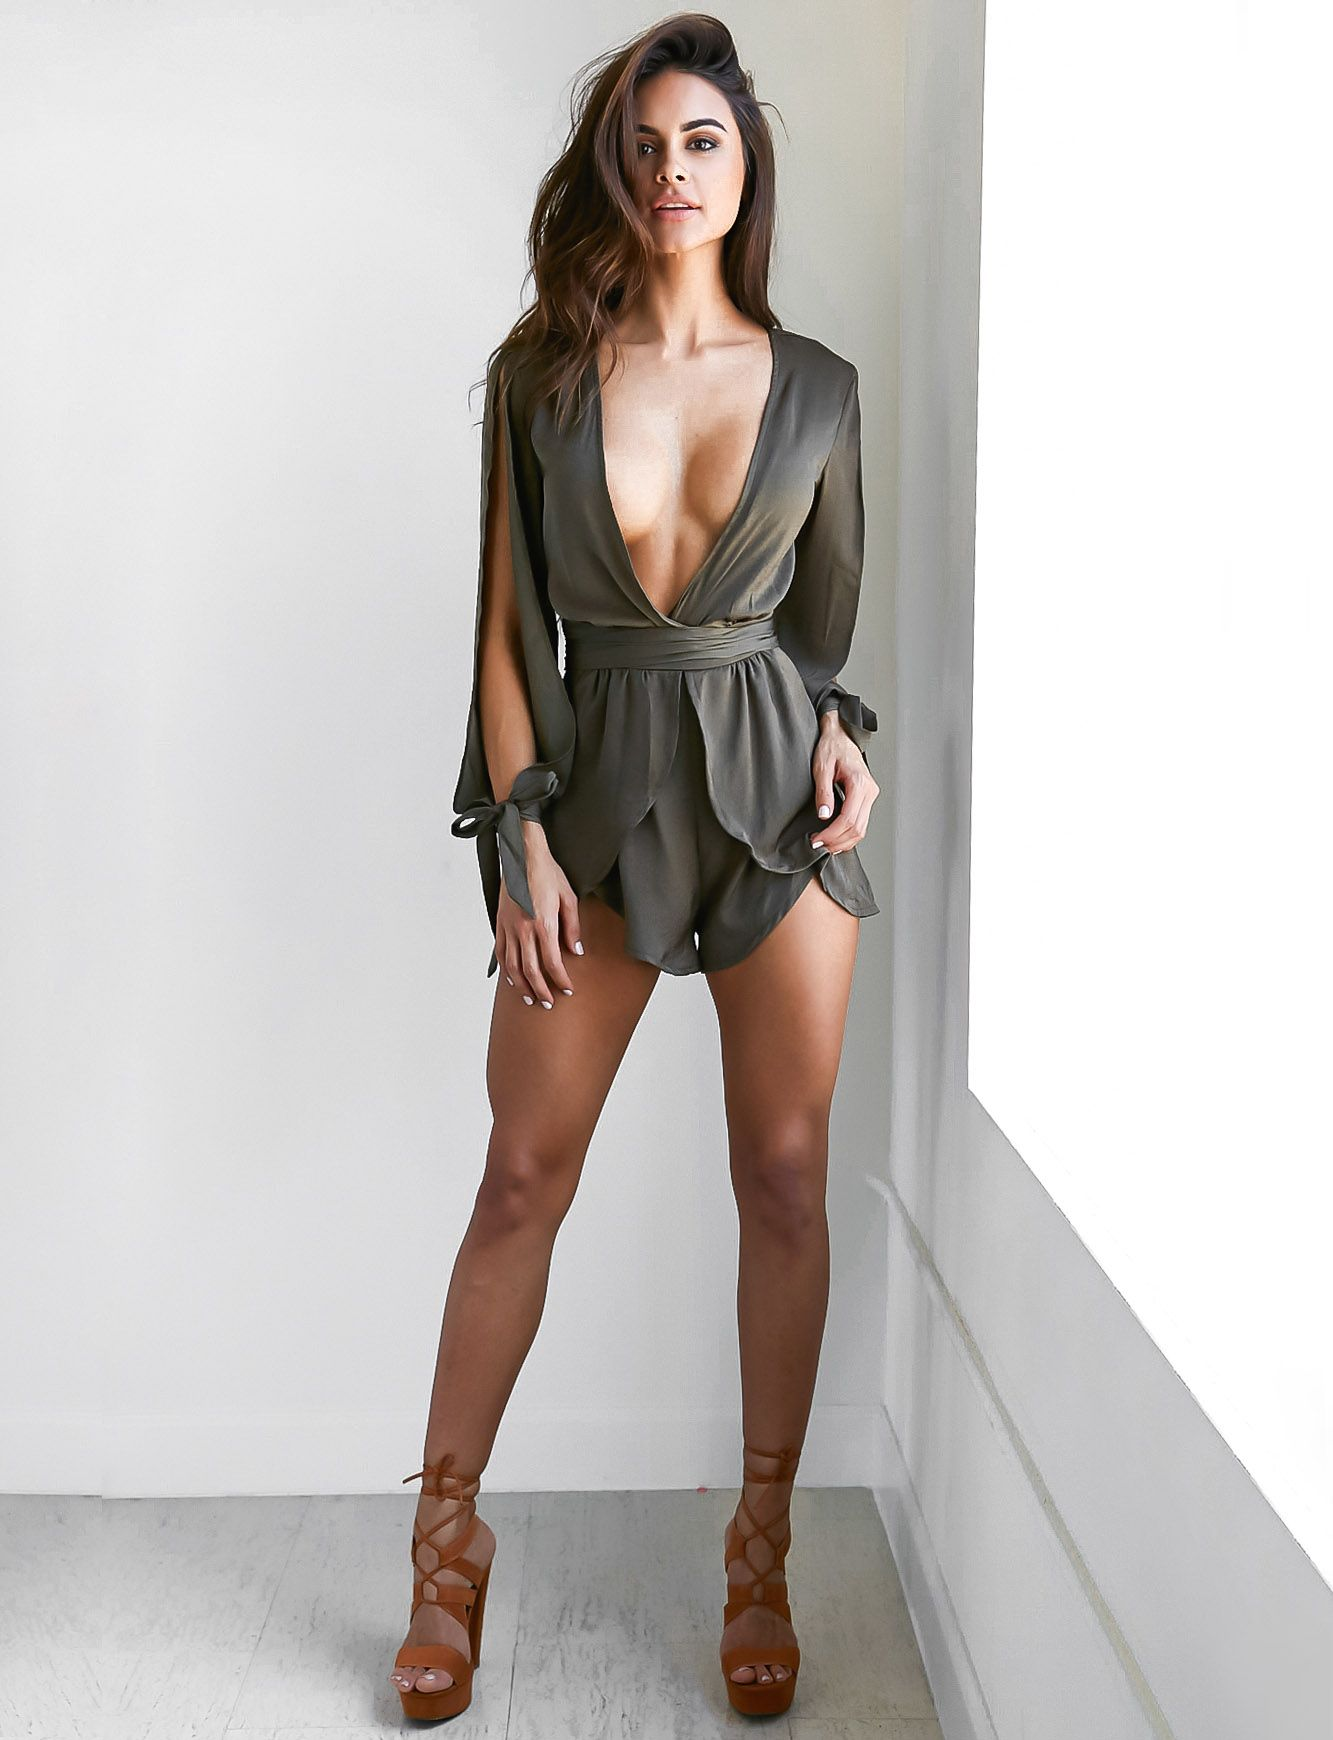 Sexy outfits for perfect figure women